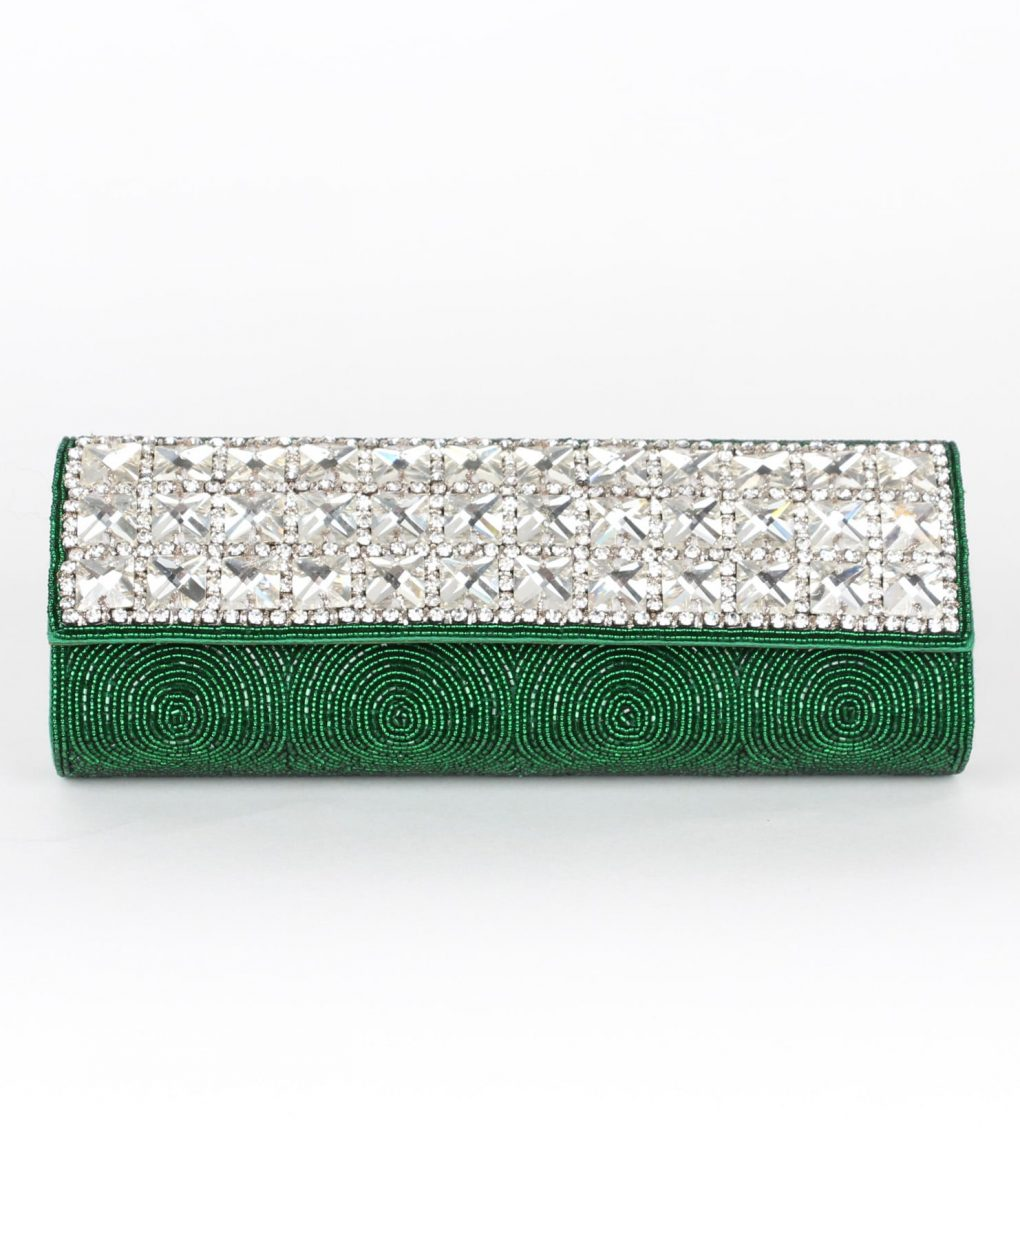 Alila Green Crystal Clutch Bag